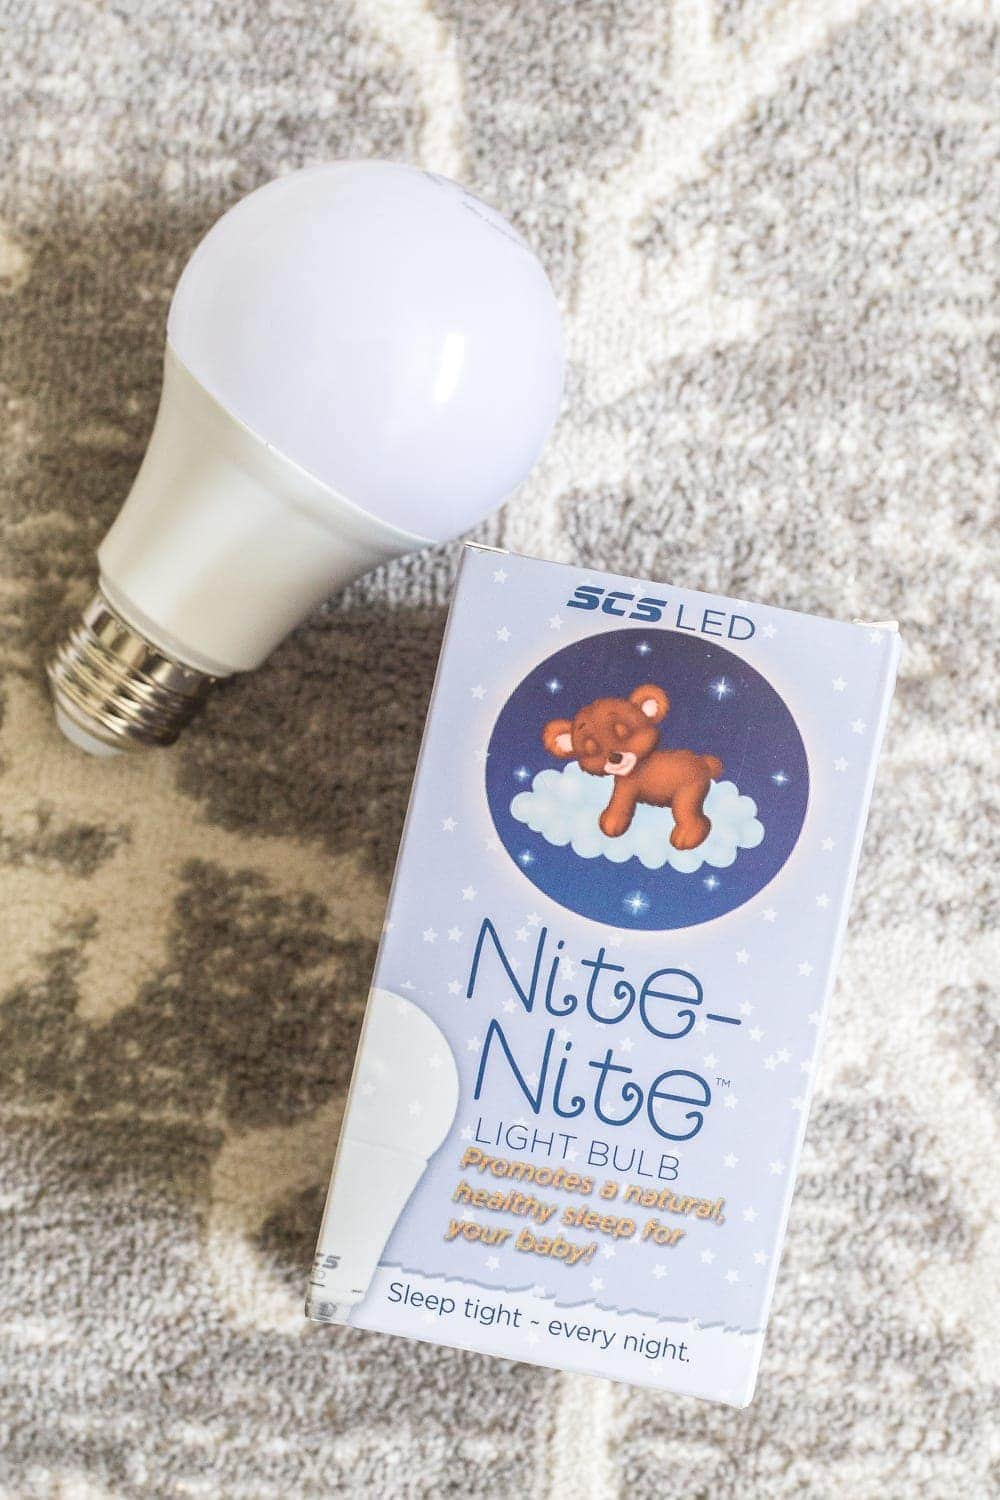 The Best Bedroom Light Bulb to Promote Sleep | Our non-biased 5 month test drive of sleep promoting light bulbs and how they help settle children, babies, and adults for bedtime. #babysleep #insomnia #lightbulb #lighting #ambience #bedroomlight #kidsbedtime #sleepsolutions